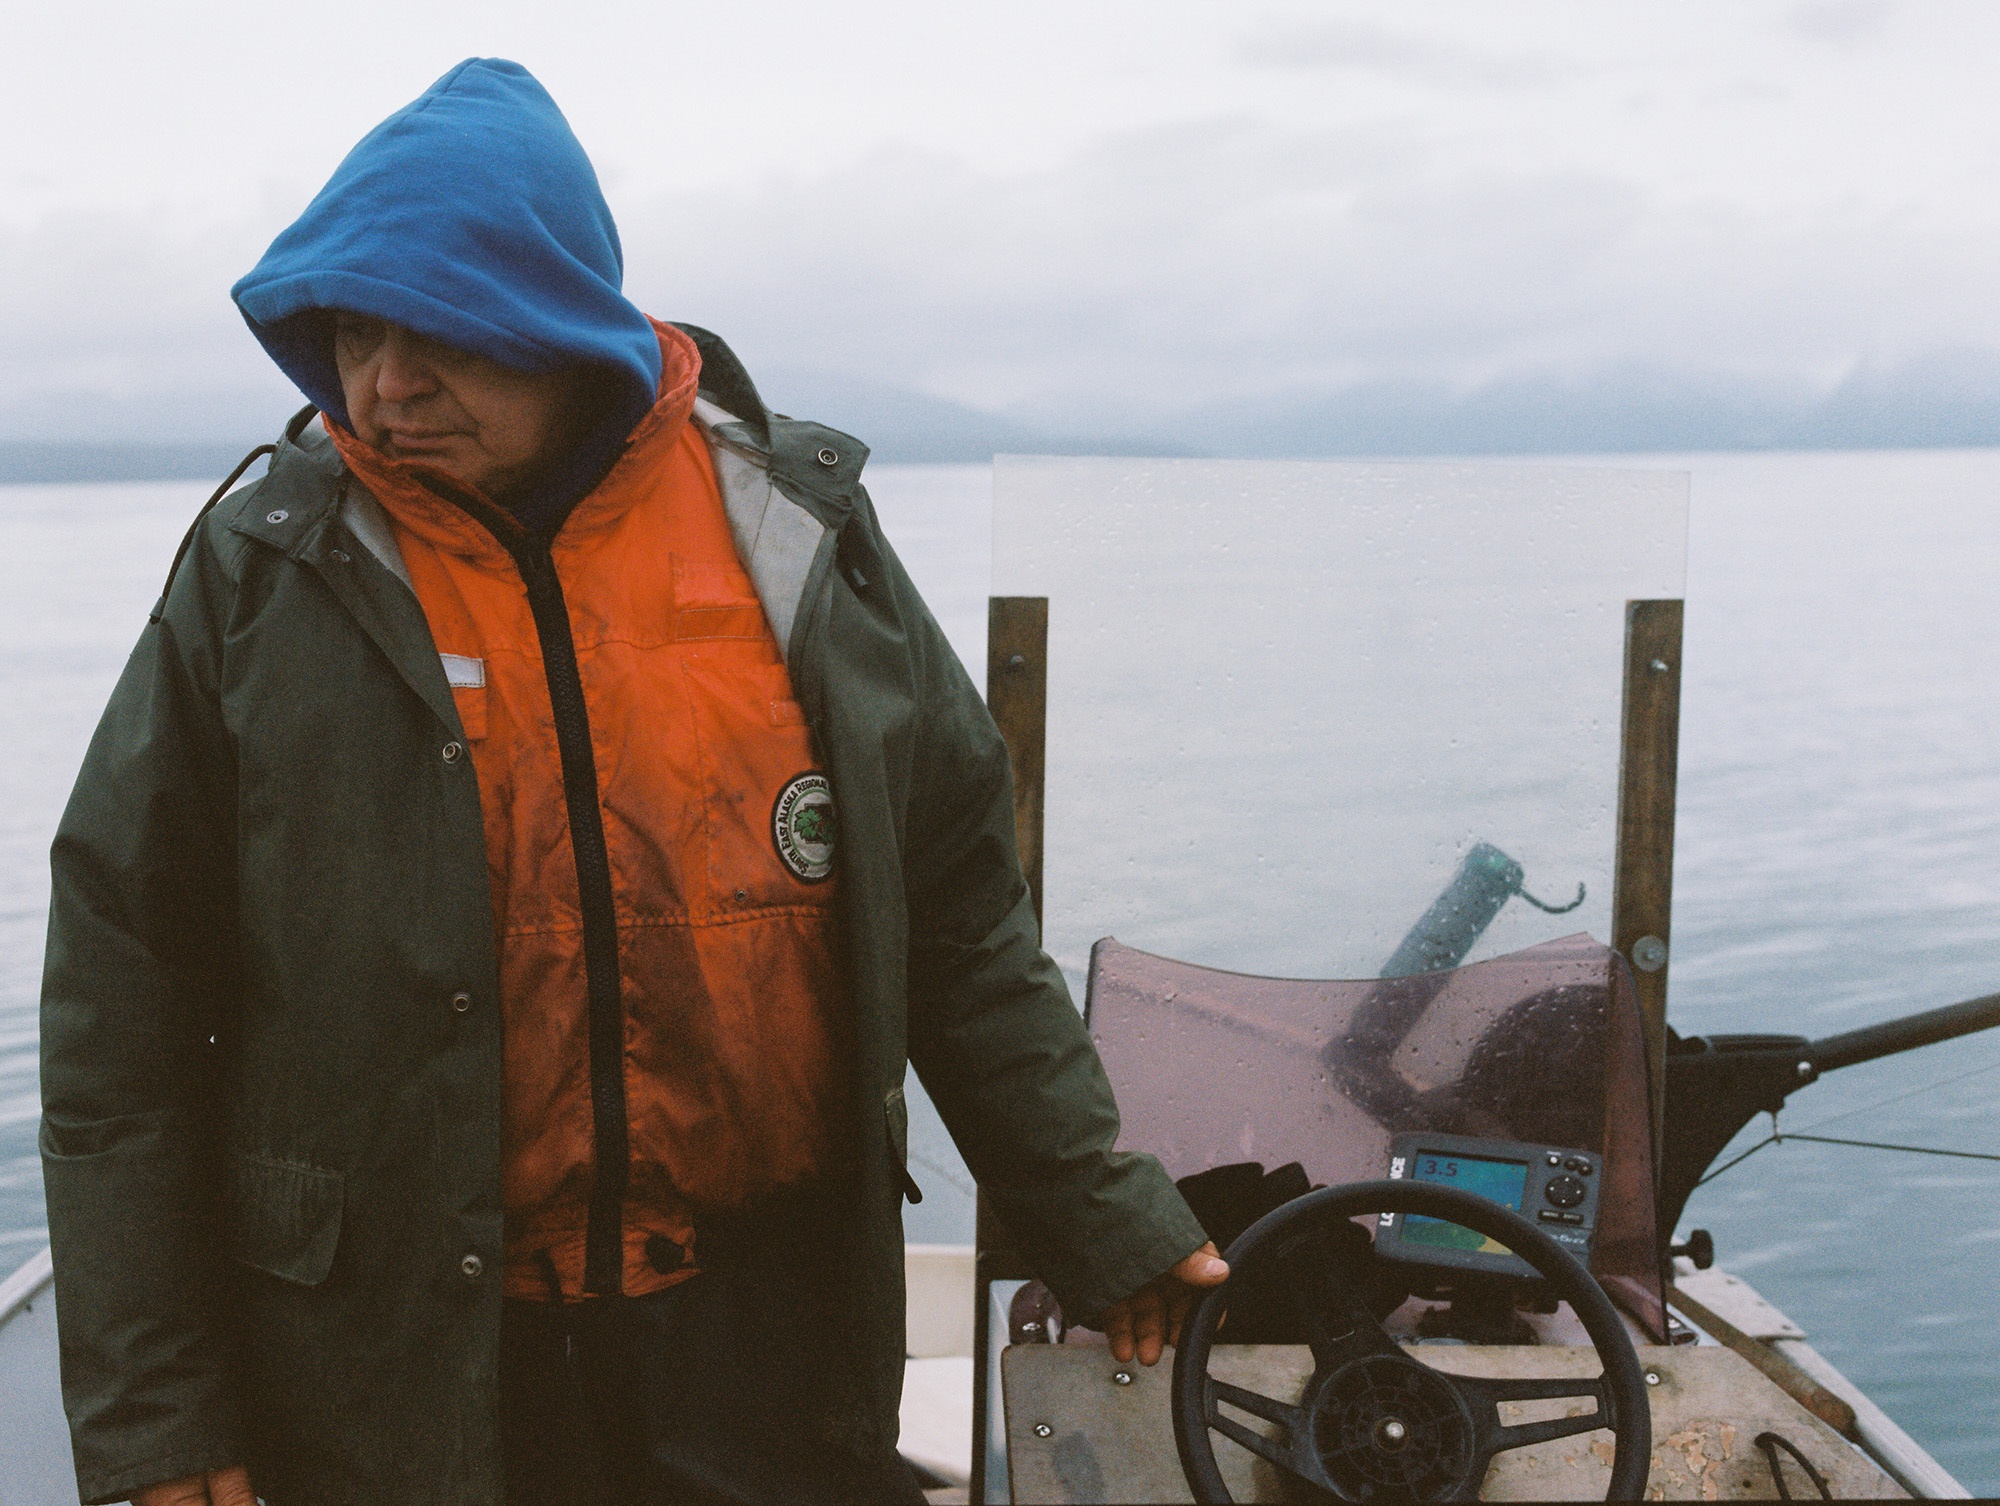 Fishing with Raino. Went out looking for King Salmon, instead got quite a bit of rain and a lot of stories and history of the land.